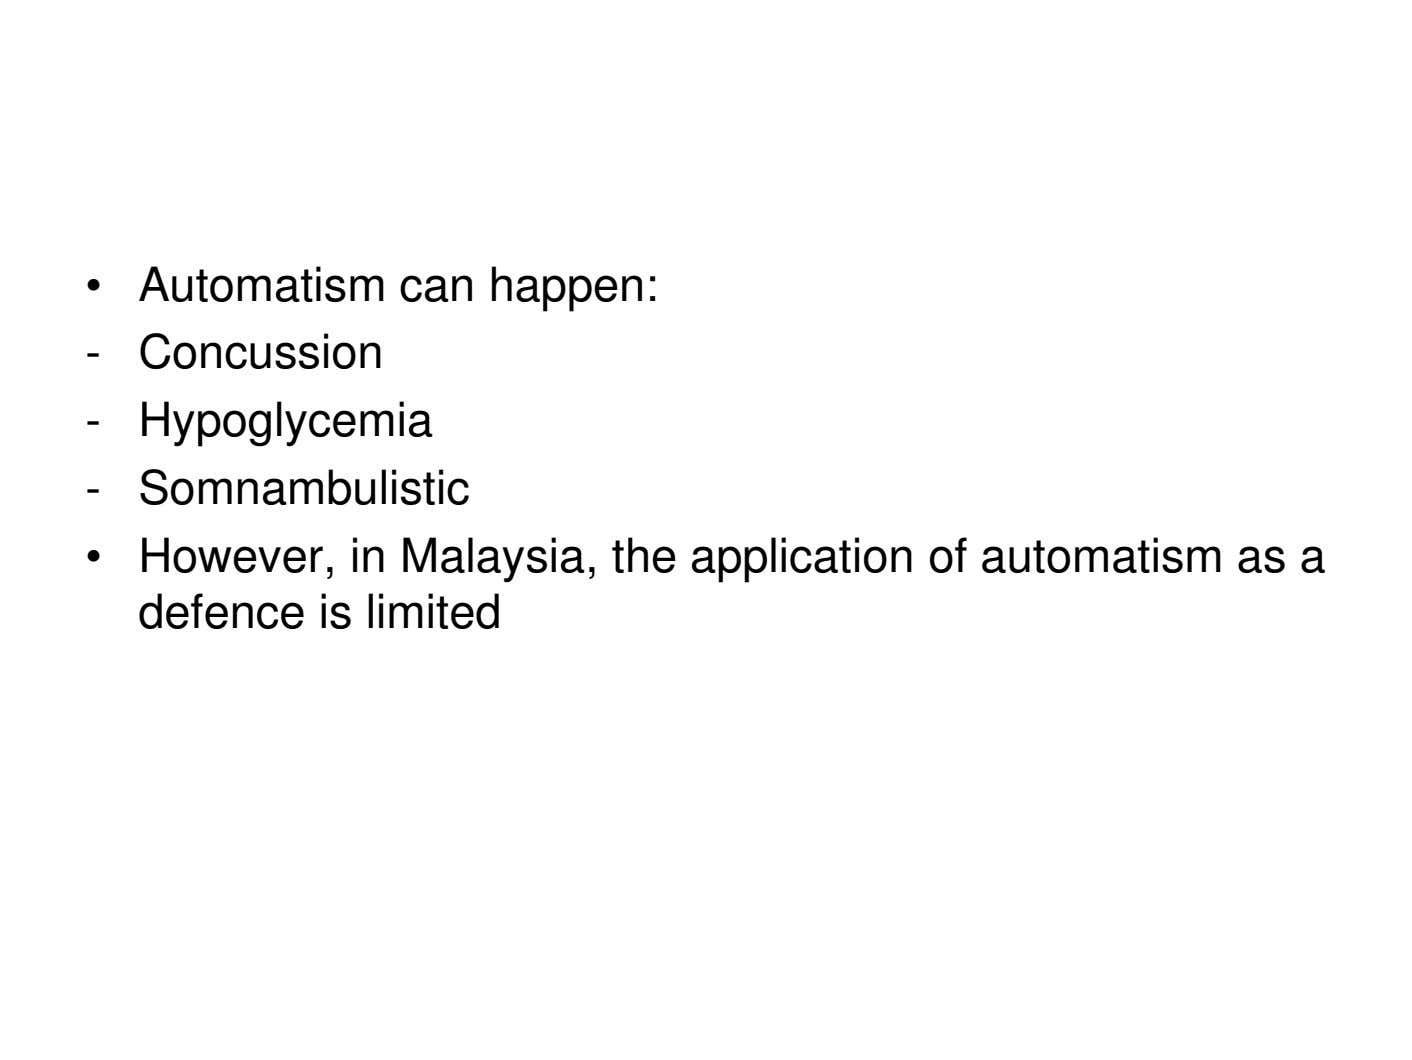 • Automatism can happen: - Concussion - Hypoglycemia - Somnambulistic • However, in Malaysia, the